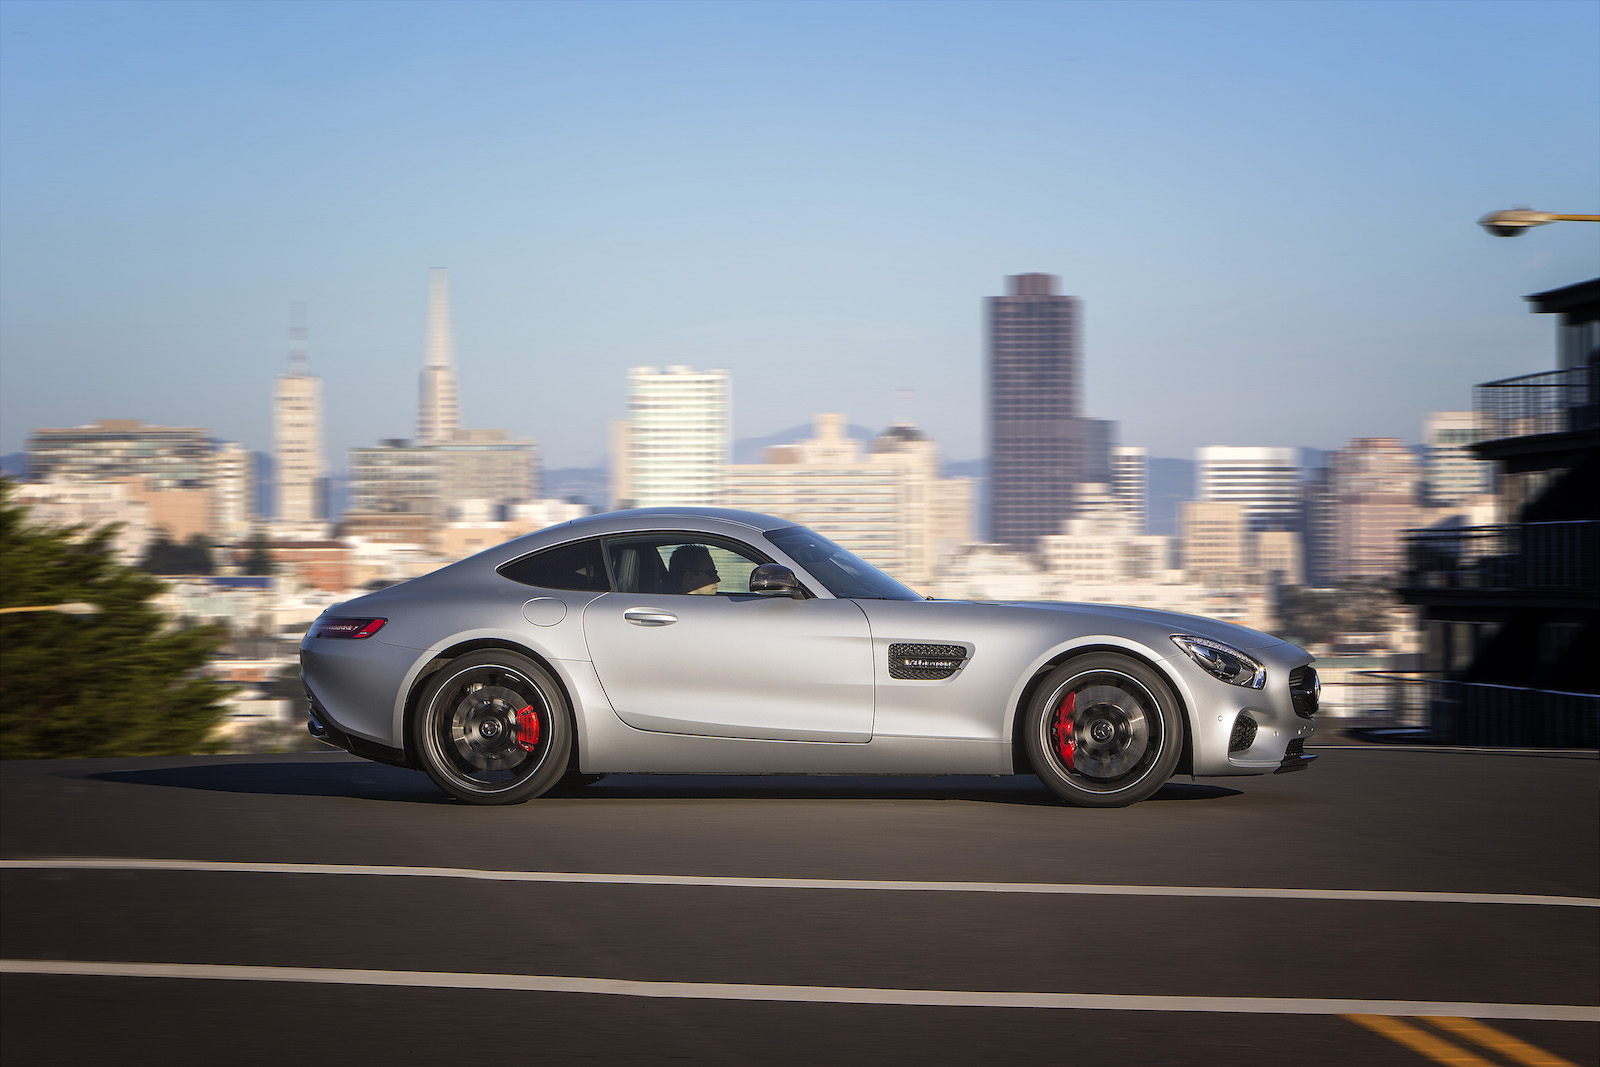 Mercedes Benz Sls Amg Review >> 2016 Mercedes-Benz AMG GT Review, Ratings, Specs, Prices, and Photos - The Car Connection